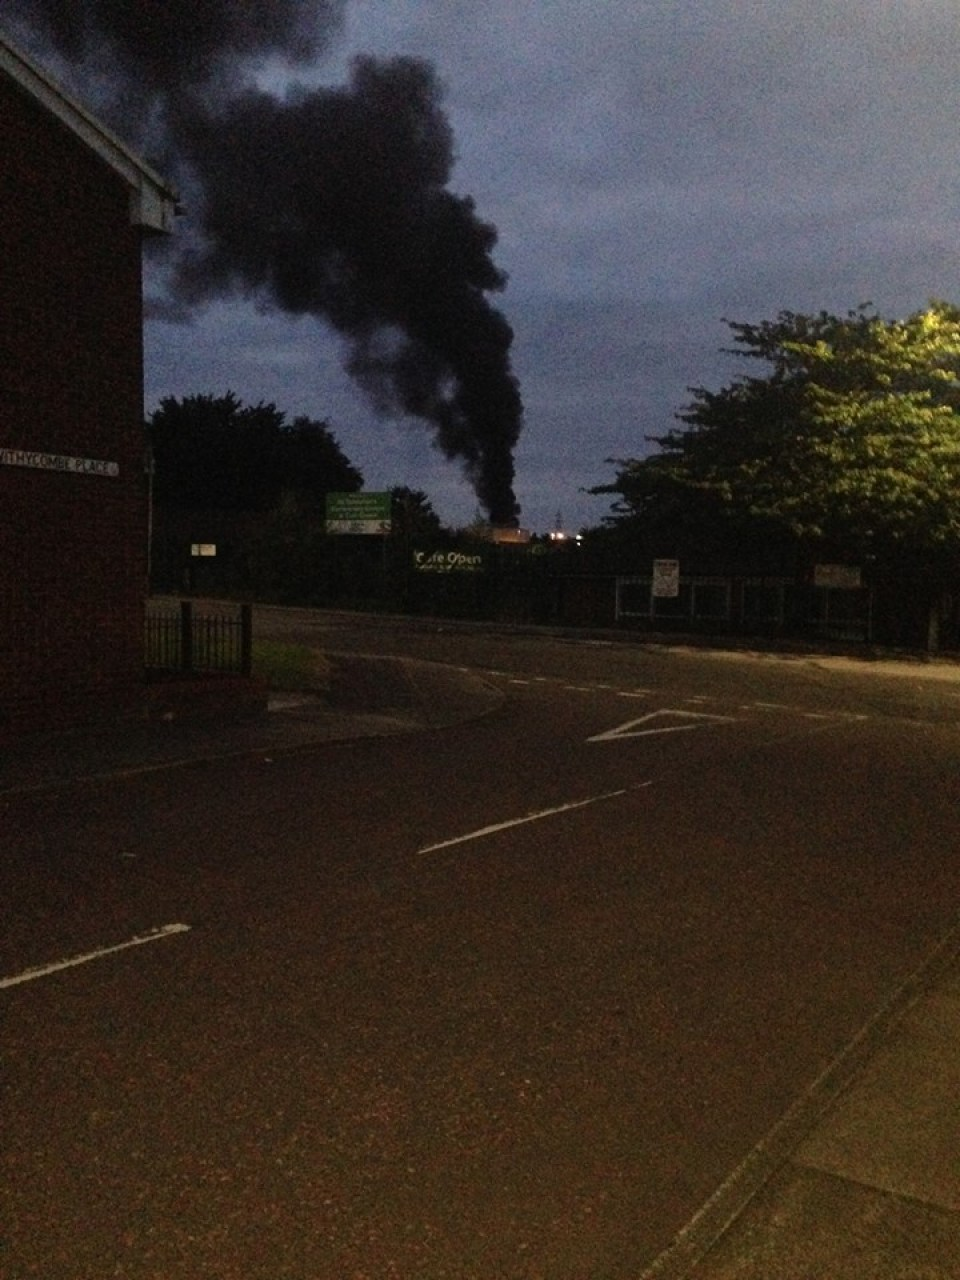 Smoke from the fire  visible from Encombe Place, Salford - Jay Chapell